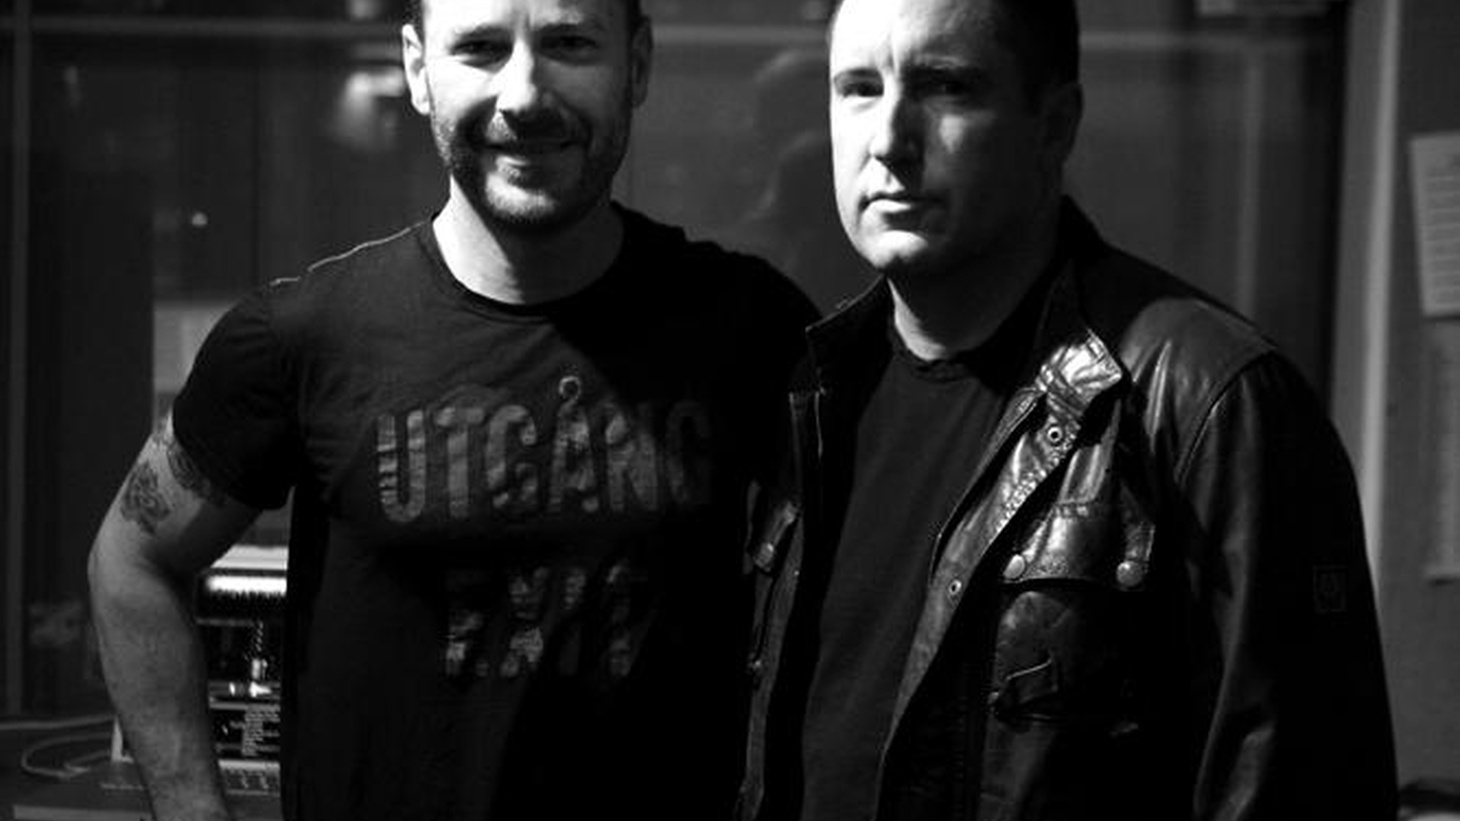 Trent Reznor joins Jason Bentley to discuss his experience composing the film score for The Social Network, a hit movie about the origins of Facebook.com. Tune in to hear all about his debut film score composition, satisfying the tone of the movie with electronic elements arranged in an orchestral way. Join us to hear songs from the the film score and for this fascinating conversation on Morning Becomes Eclectic.